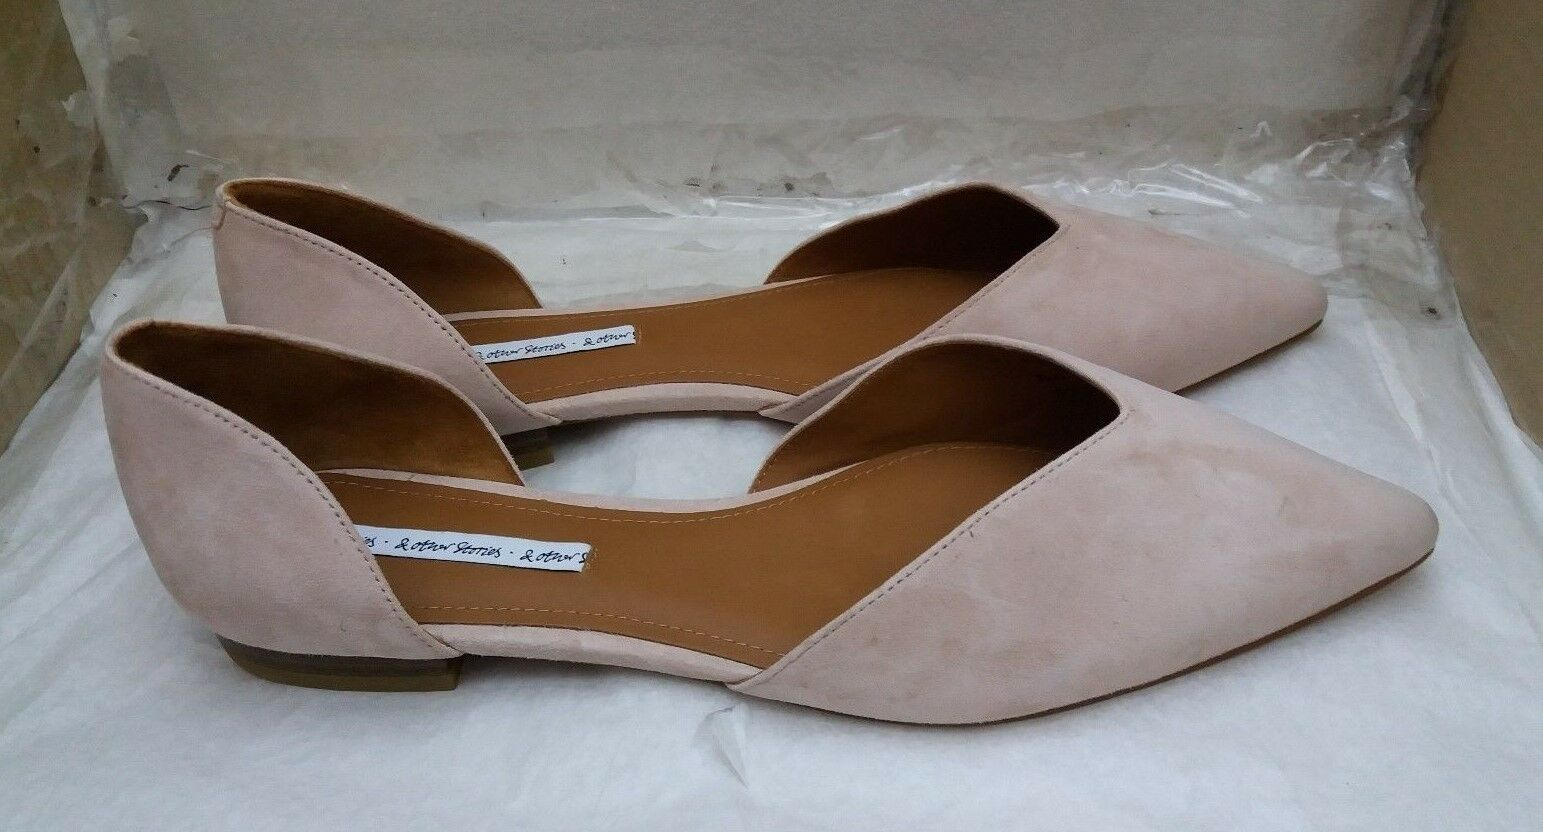 & Other Stories Pointed Ballerina Flats - Designed in Paris 41 - Beige - EU 41 Paris e9e155